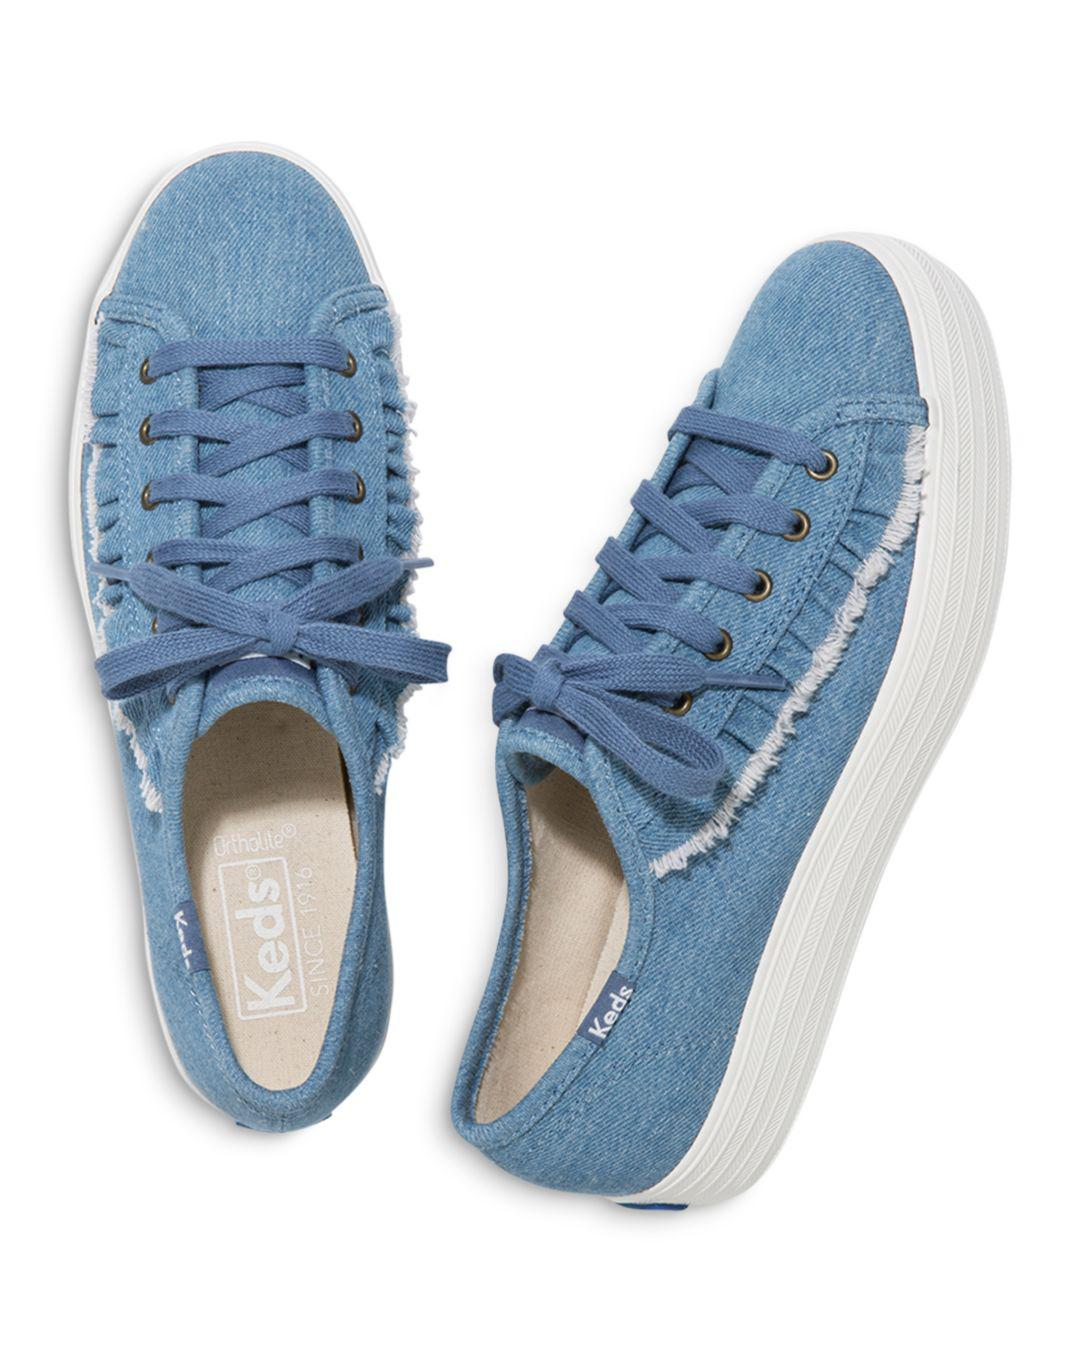 85caa43b3139d Lyst - Keds Women s Ruffle Triple Kick Canvas Lace Up Sneakers in Blue